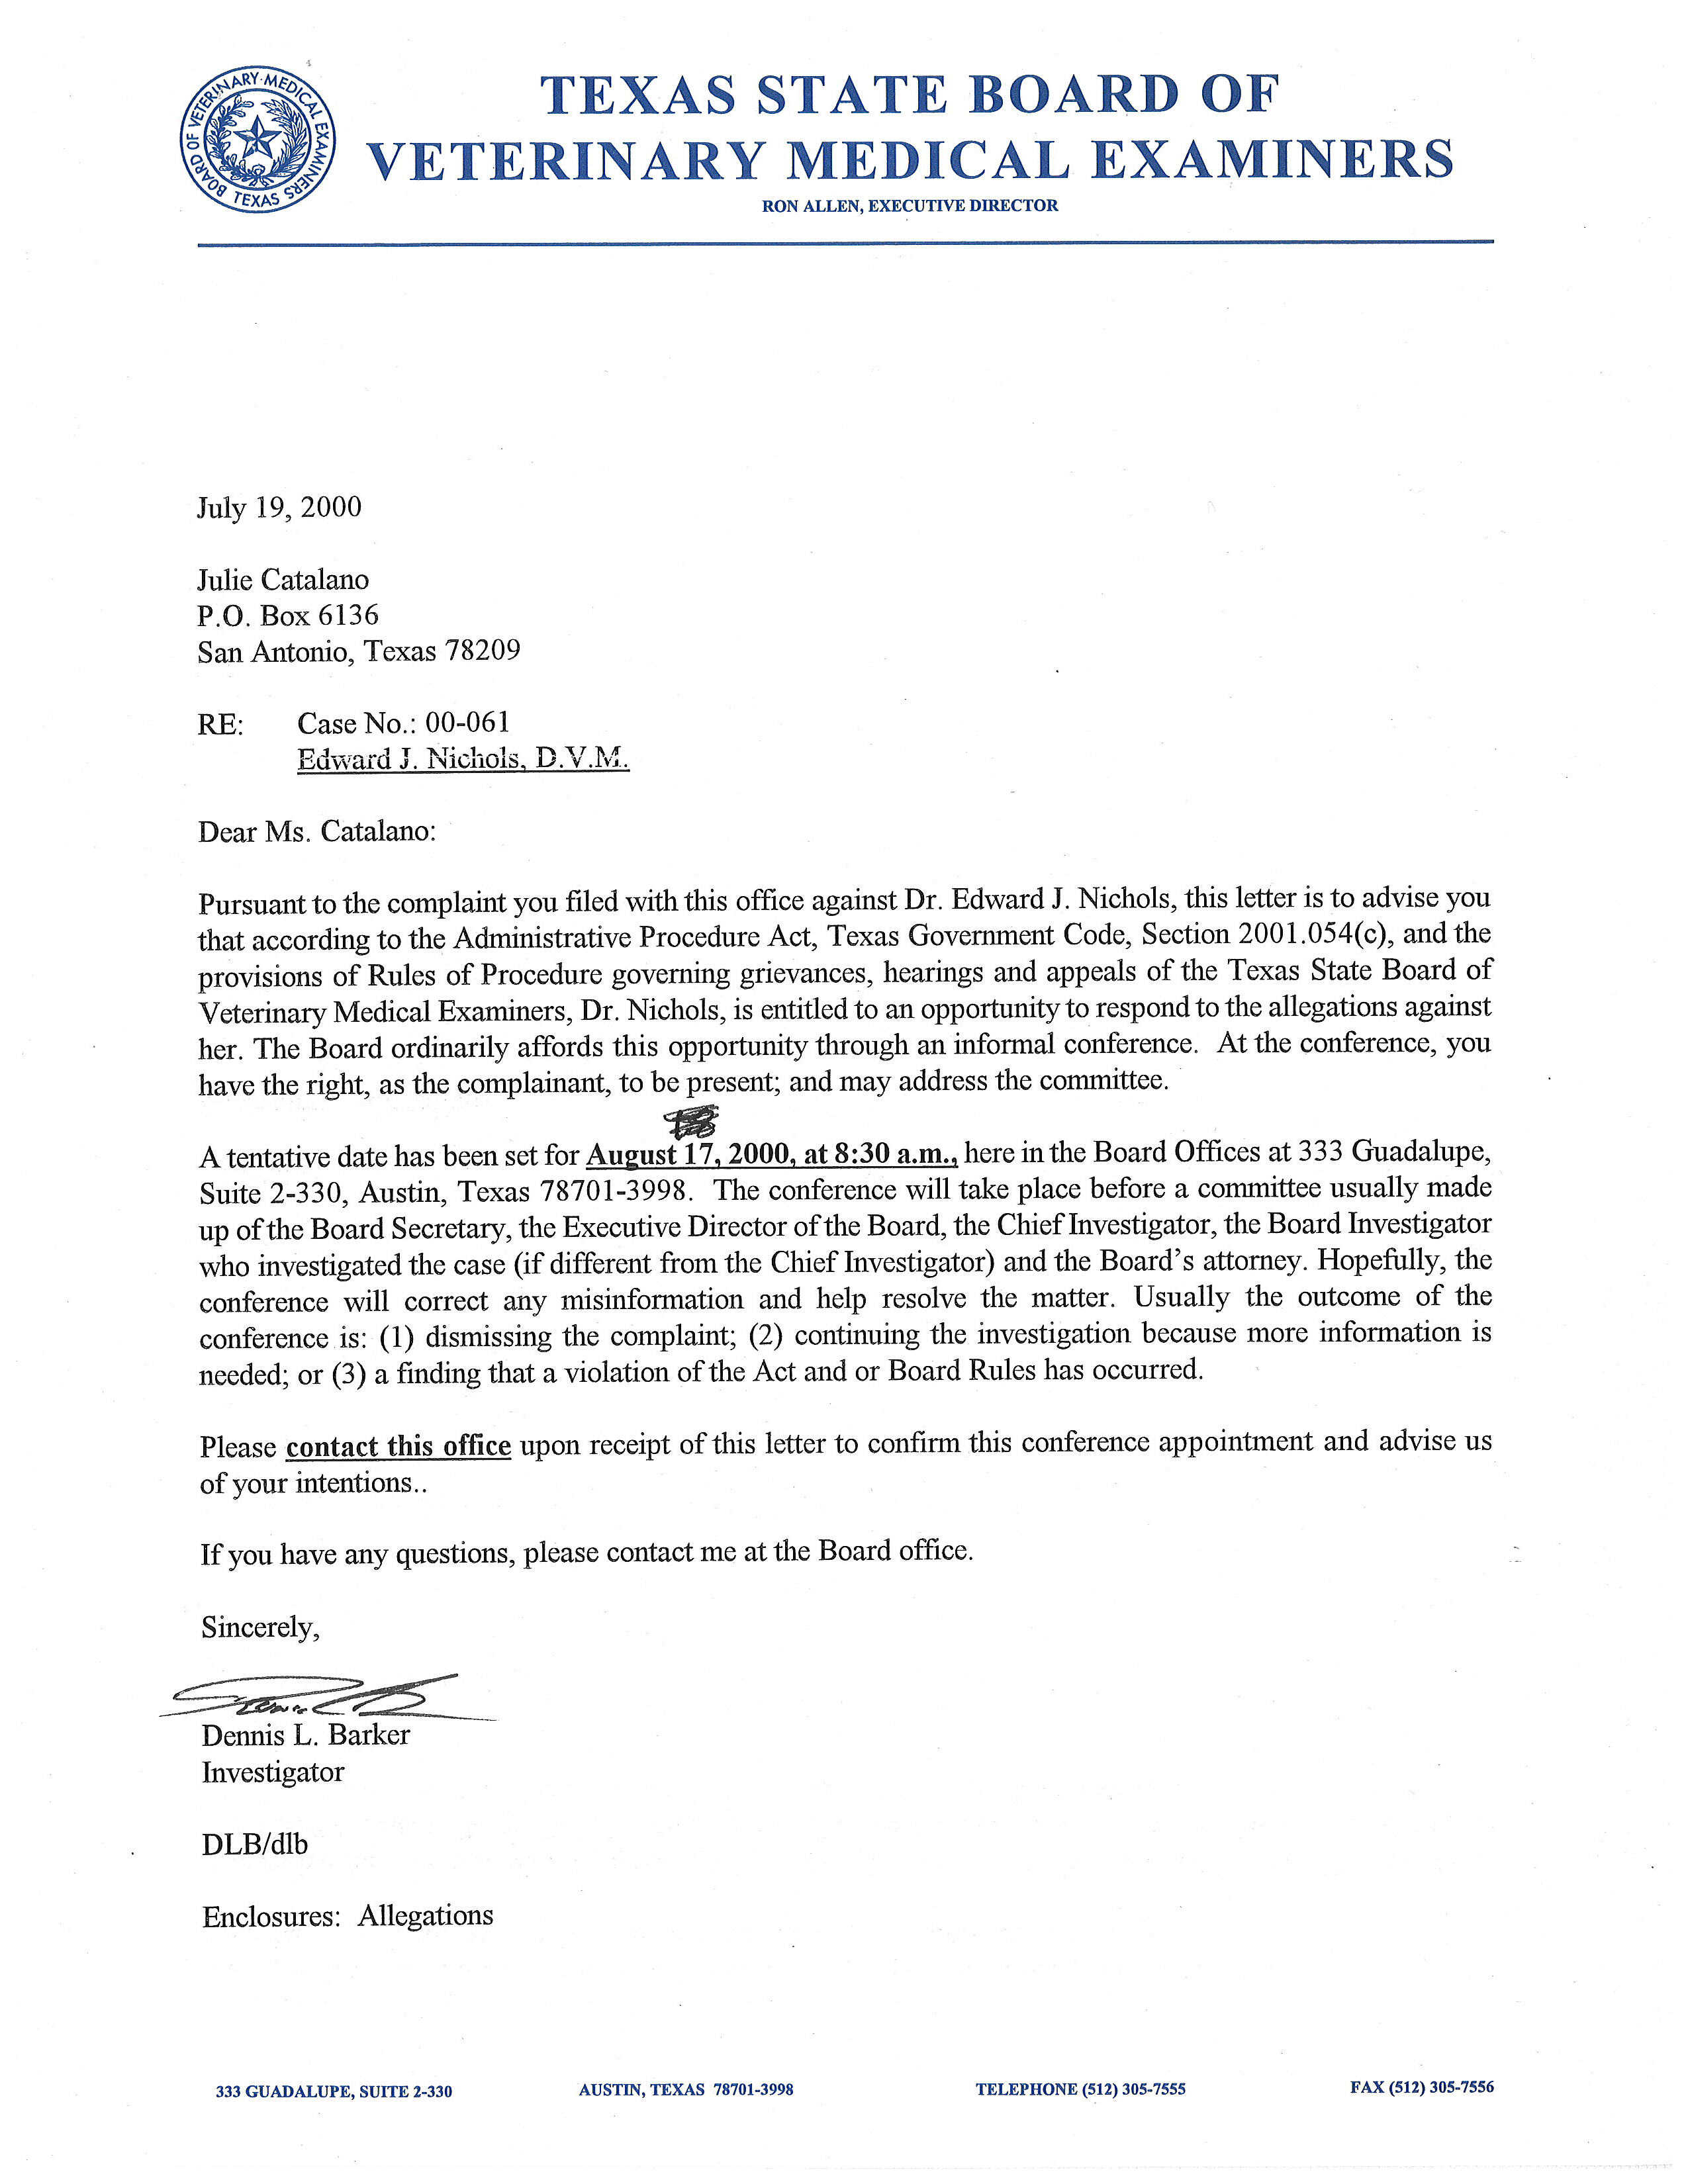 Recommendation Letter Example Medical School